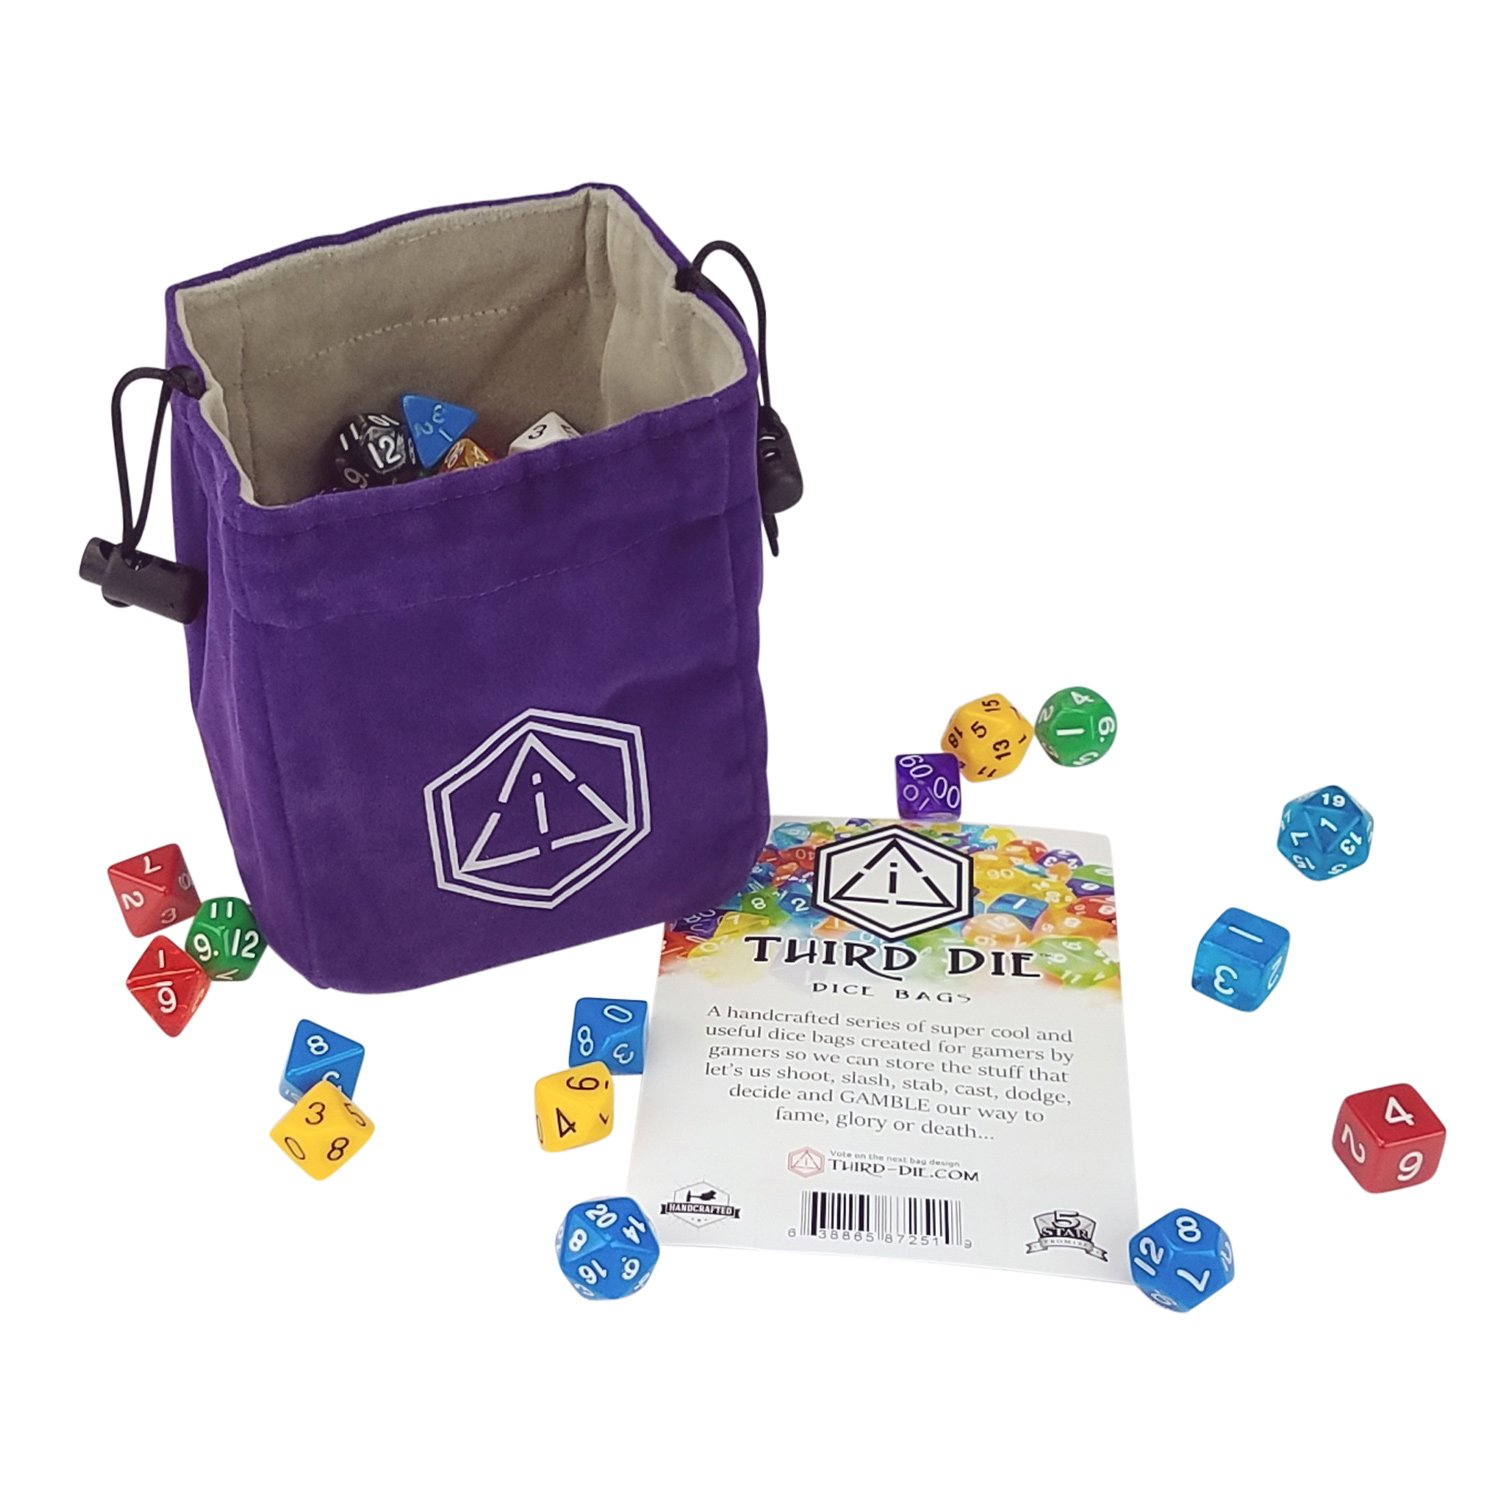 Third Die Dice Bag - Handcrafted And Reversible Drawstring Bag That Stands Open On The Table - For All Your Gaming Needs - Purple and Light Gray